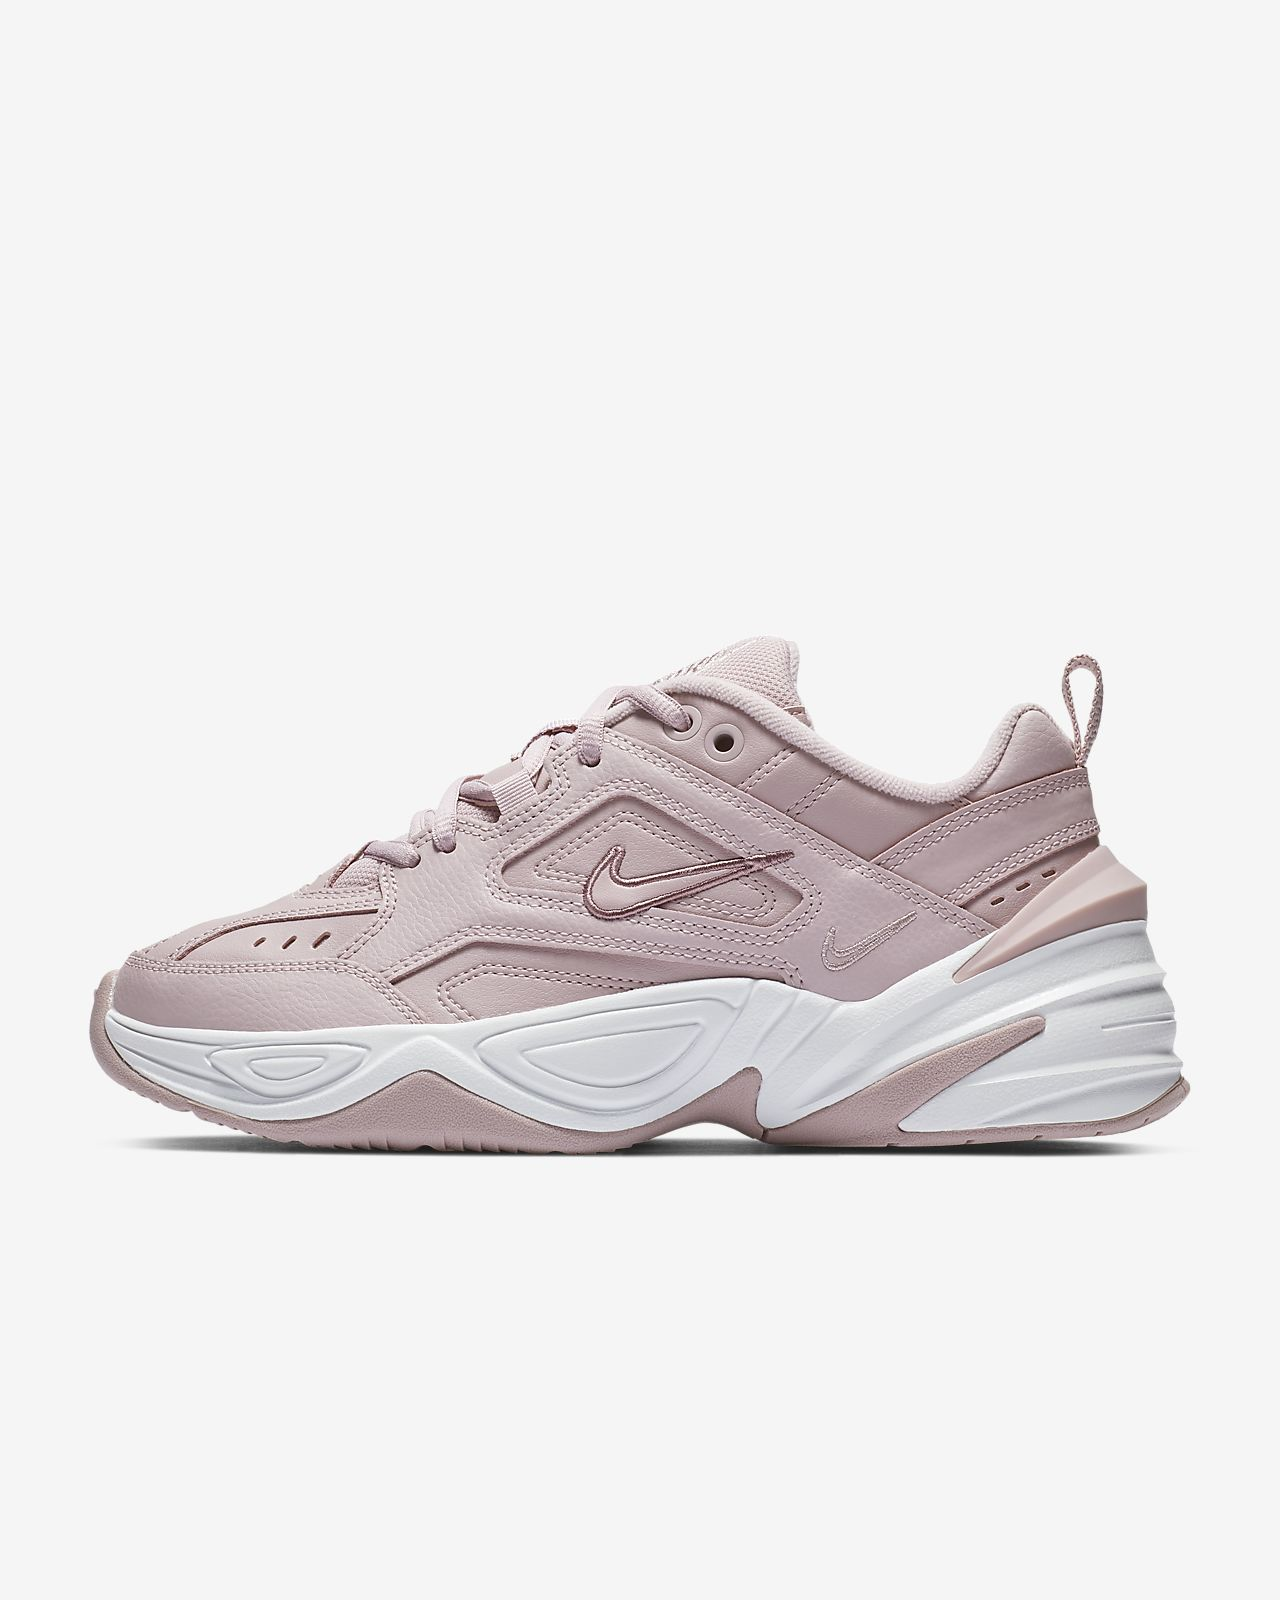 9ebda7b41e8f Low Resolution Nike M2K Tekno Shoe Nike M2K Tekno Shoe